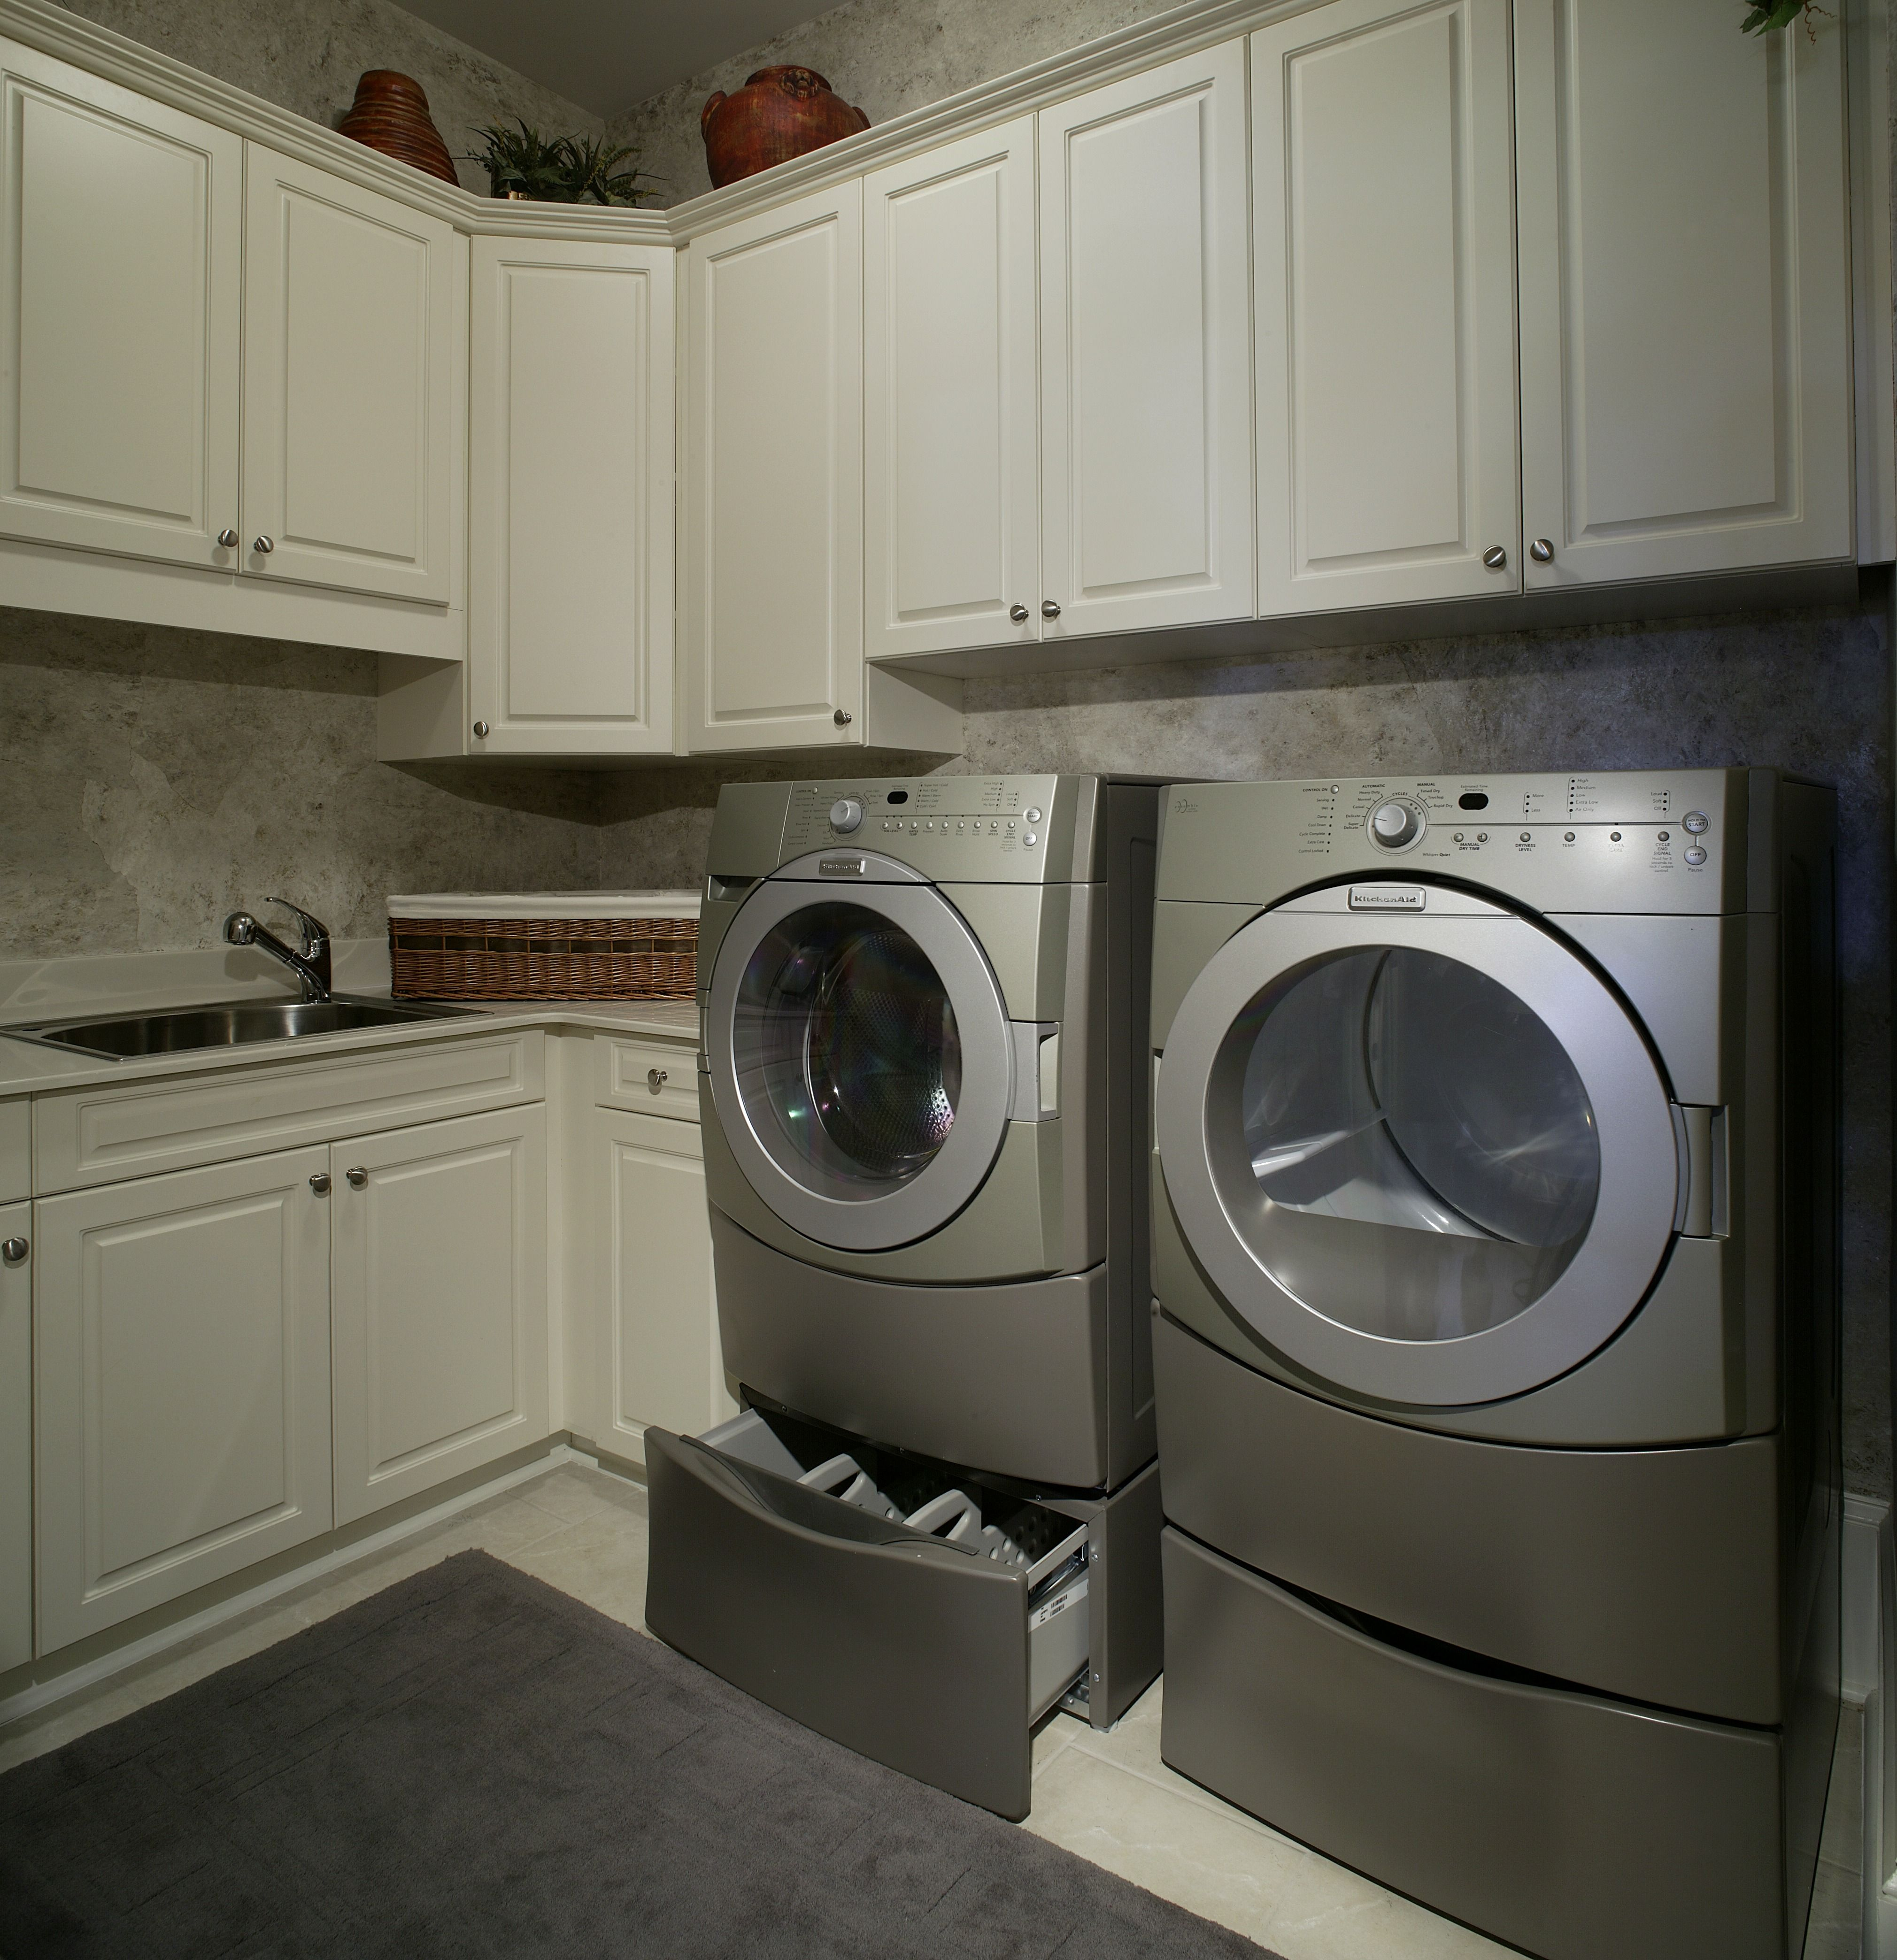 Cabinet Refacing Cost: A Clean Look With White Cabinets And A Gray Washer And